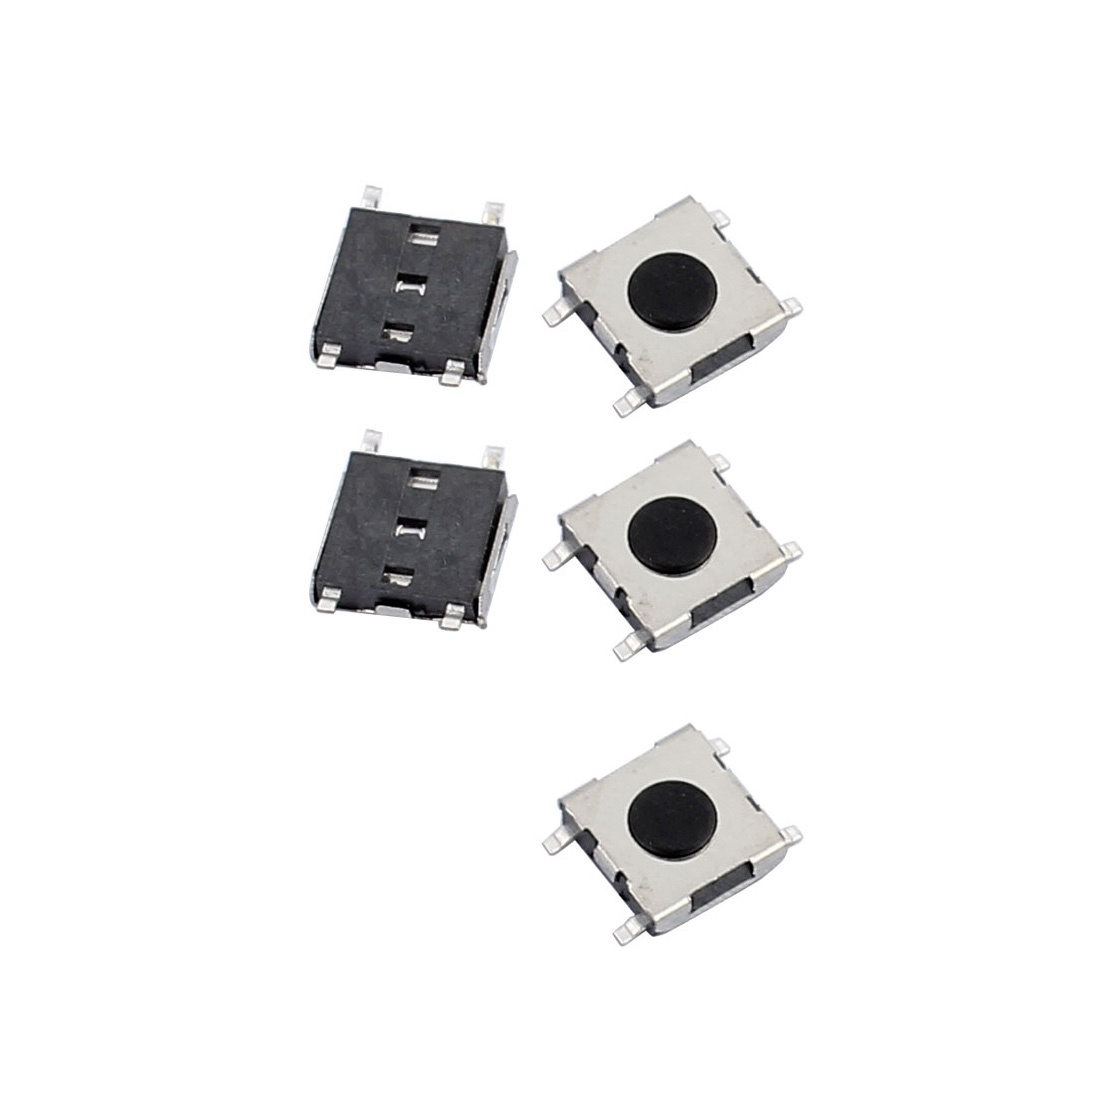 5Pcs 4.5mmx4.5mmx1.5mm Panel PCB Momentary Tactile Tact Push Button Switch